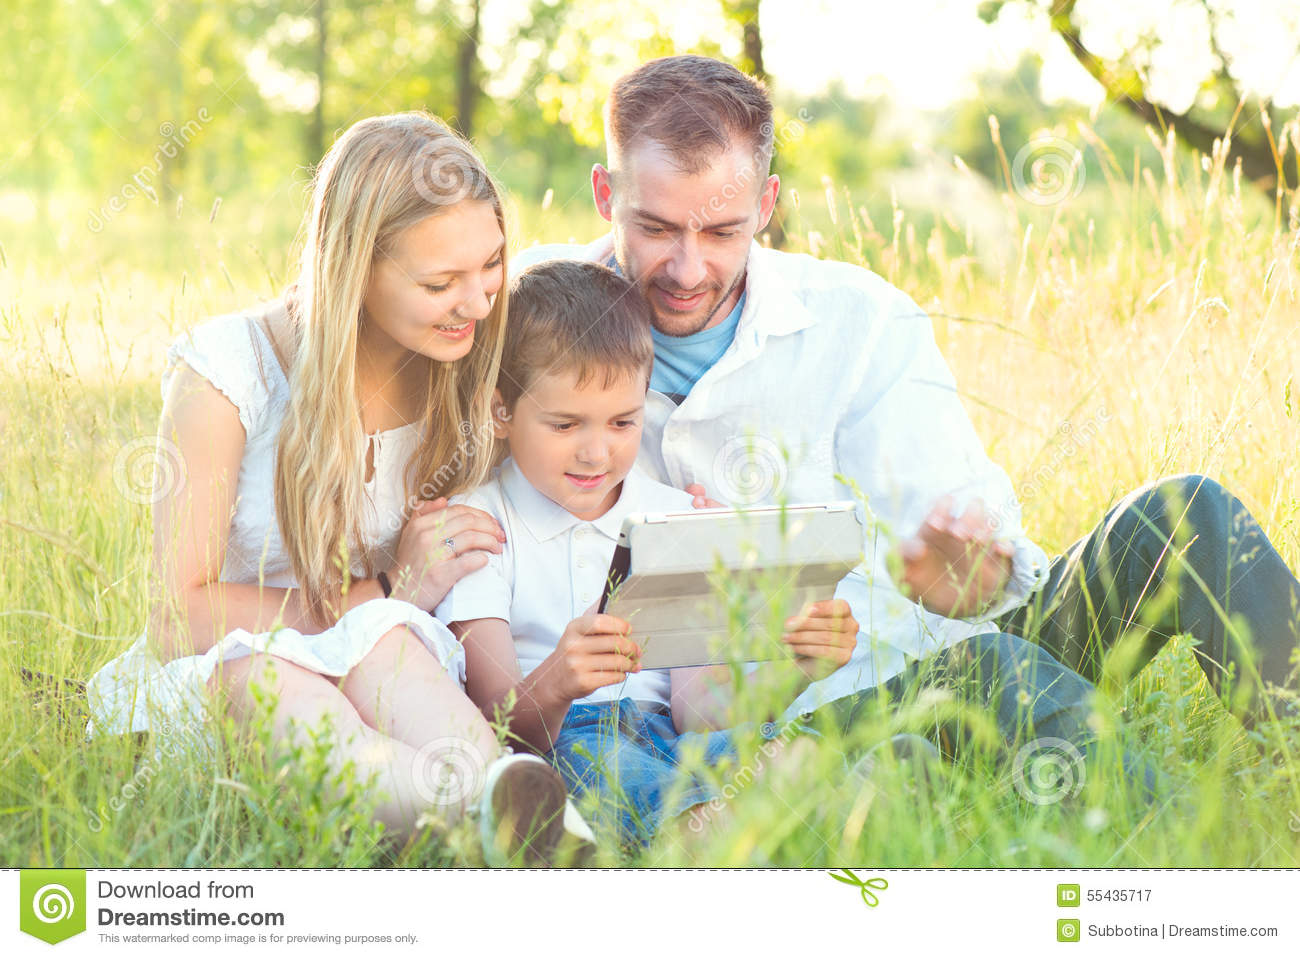 the happiness that young children bring in the family Helping others brings good feelings to the giver and the receiver of the good deeds using your special gifts to help others can be a gift to yourself as you enjoy a self esteem boost for making.